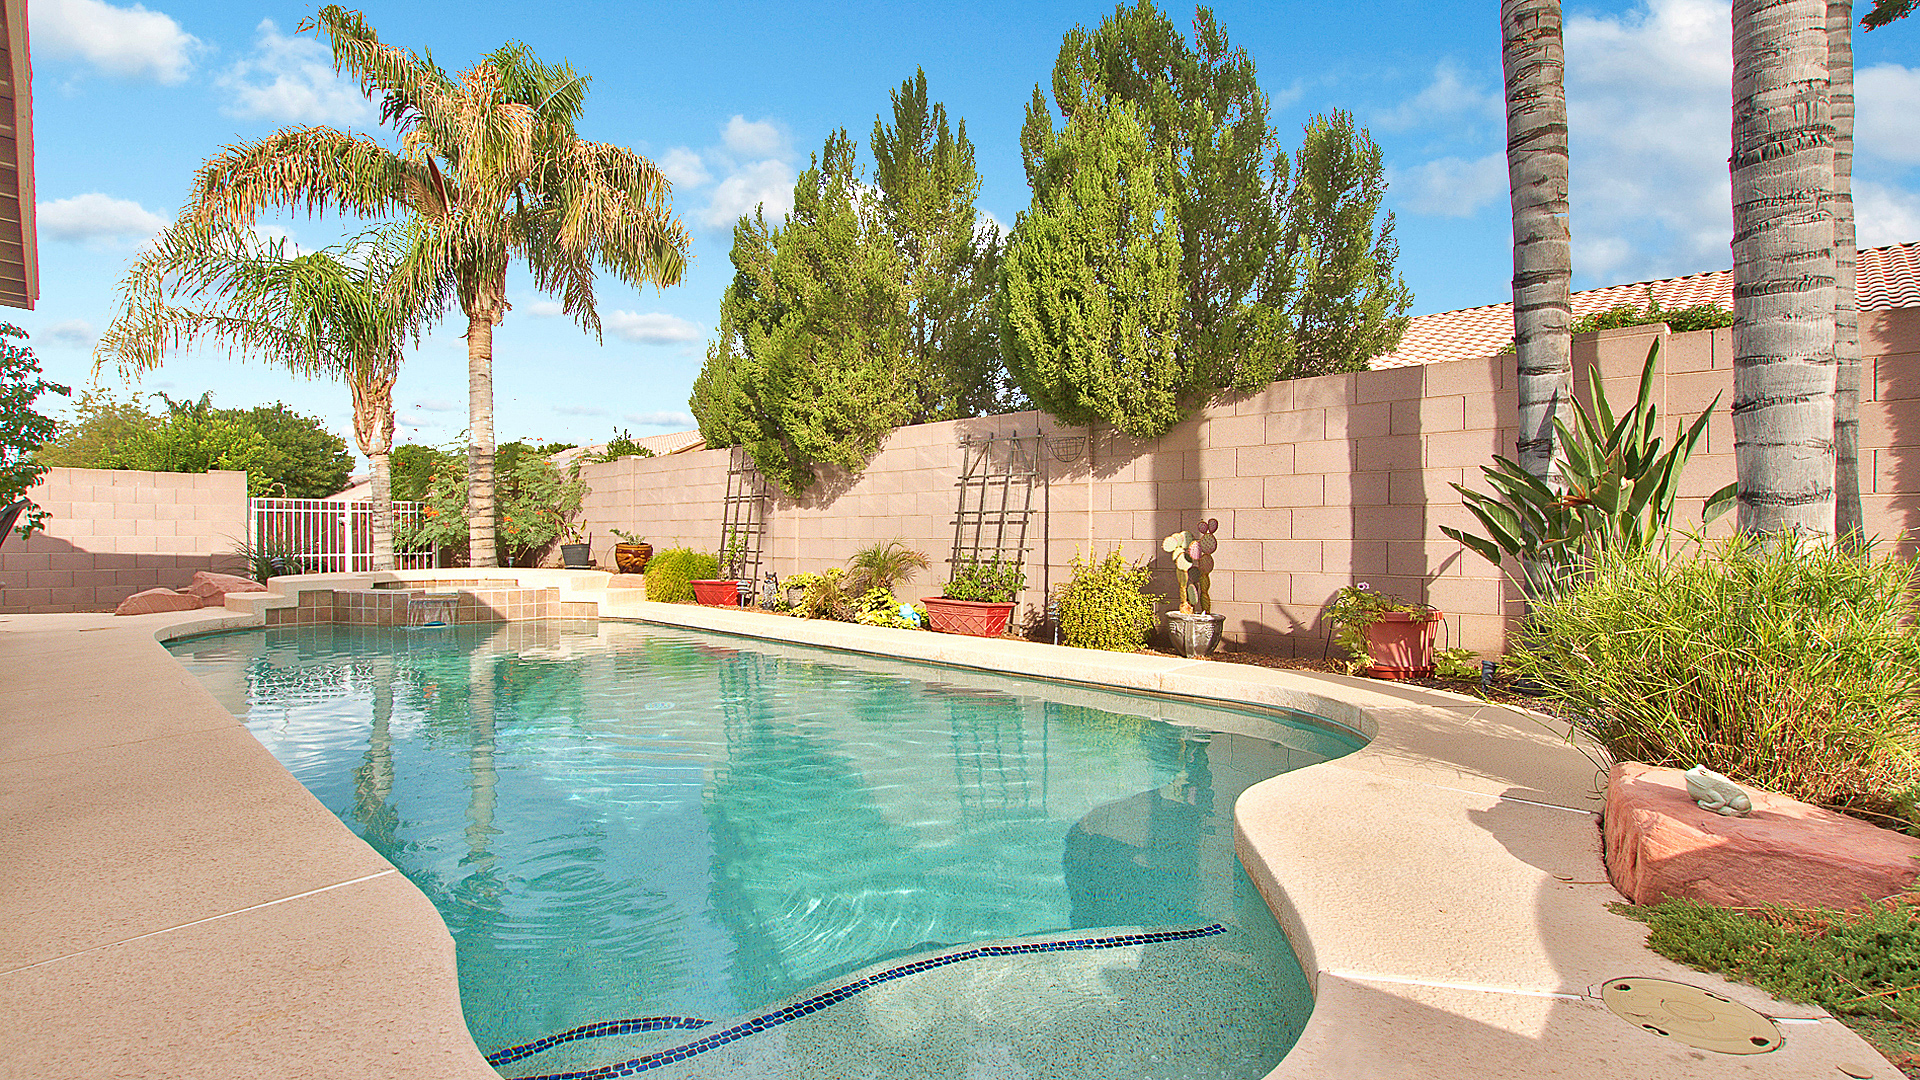 Mountain view highlands home for sale with pool in mesa az for Pool fill in mesa az